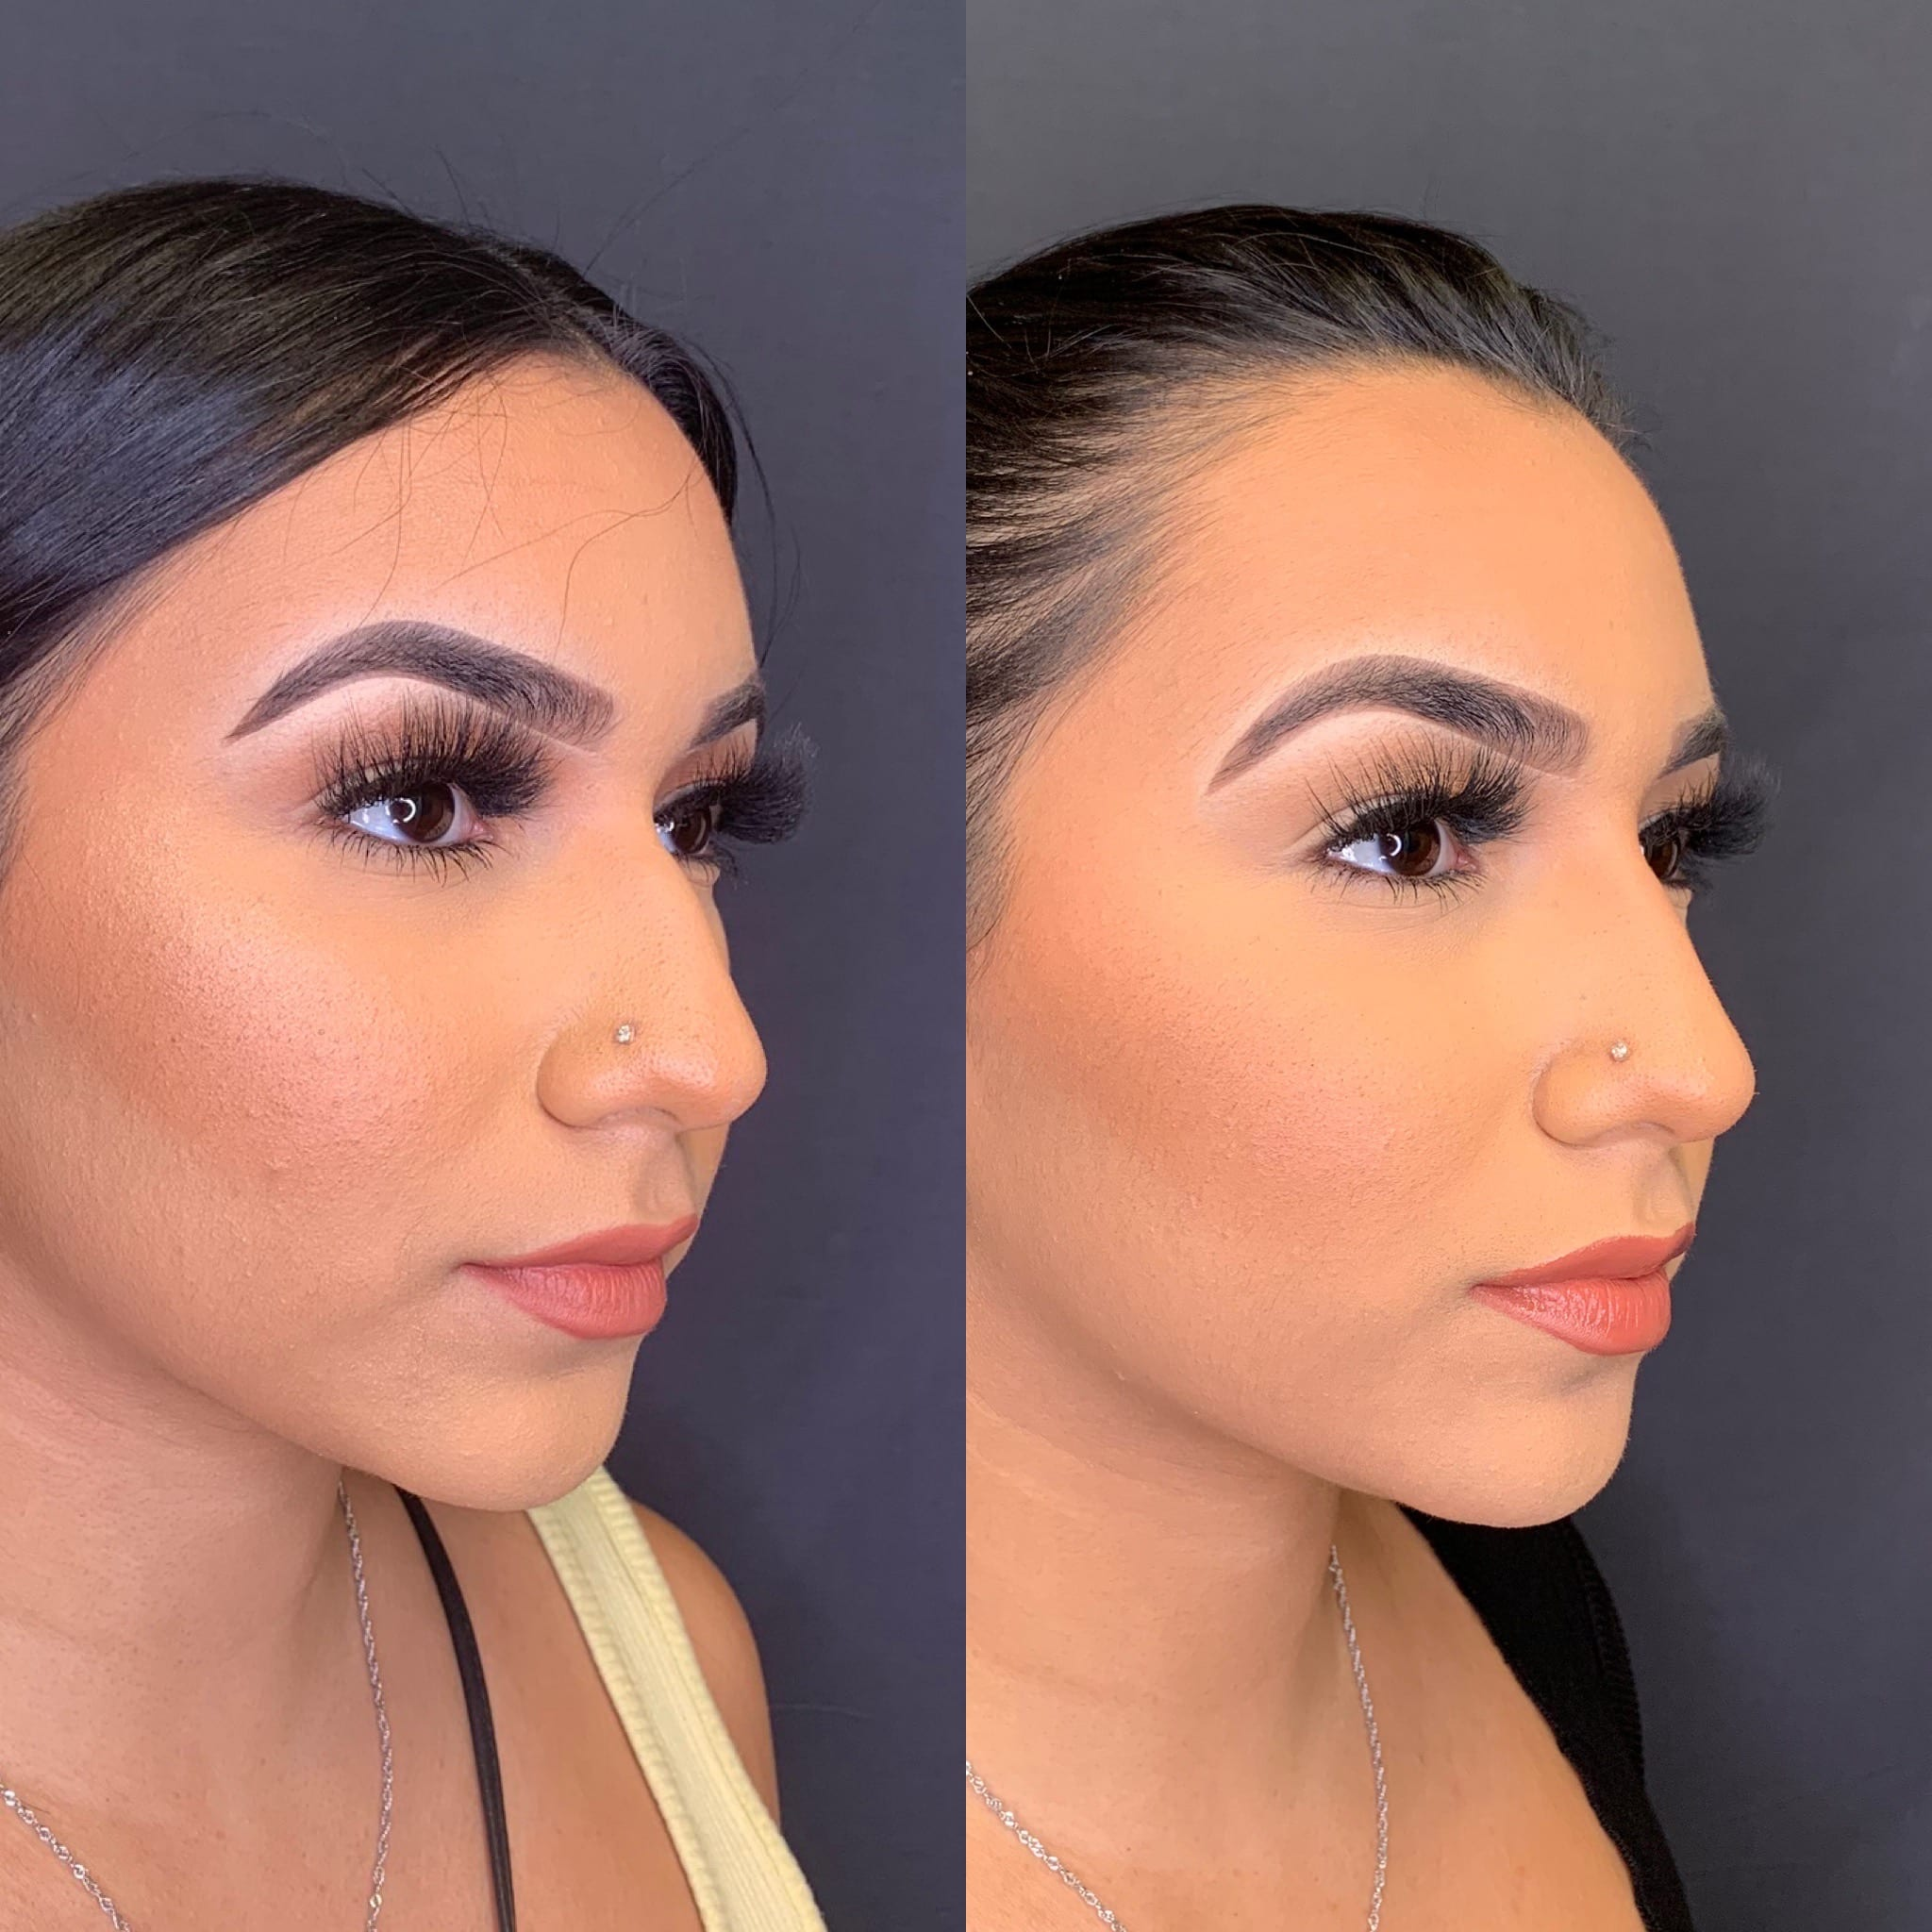 24 y/o Hispanic F 2 weeks after injecting voluma above her nasal hump to improve her side profile.